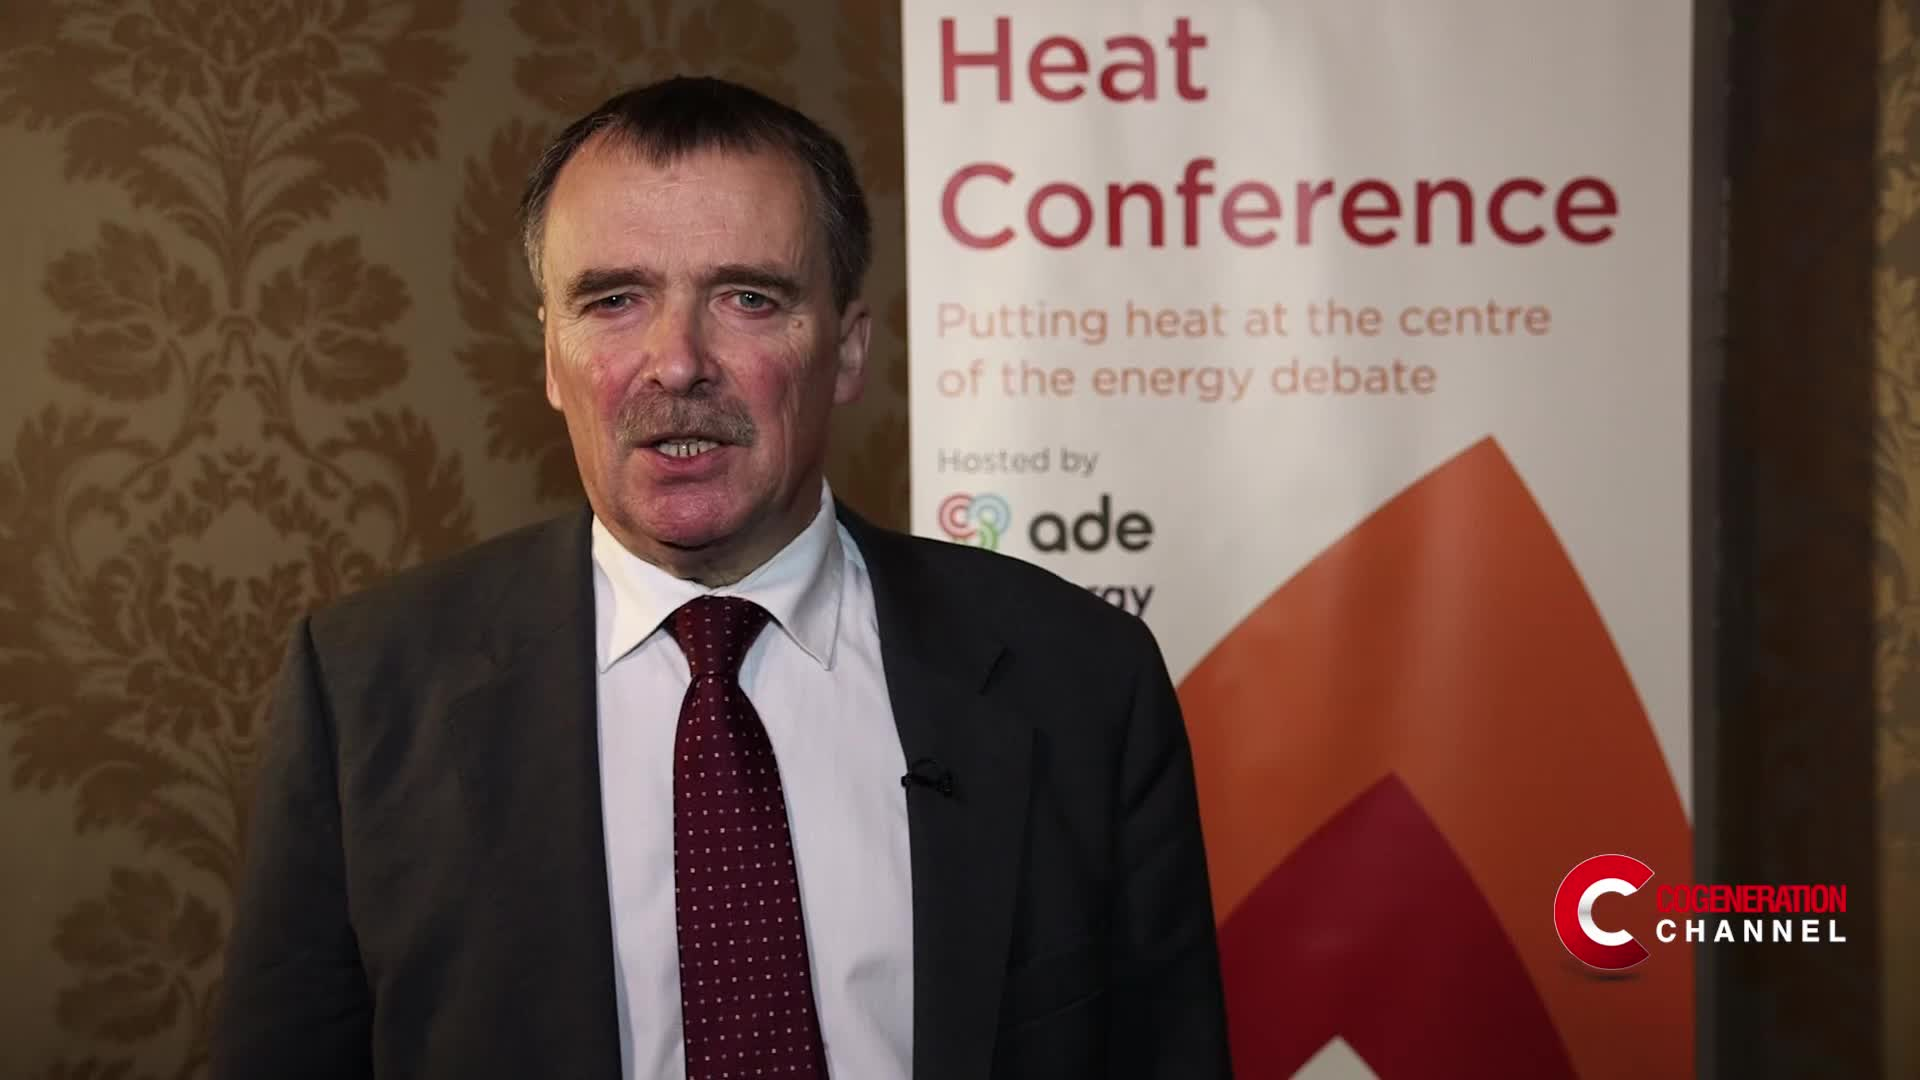 How will the spending review affect new district heating projects in the UK?